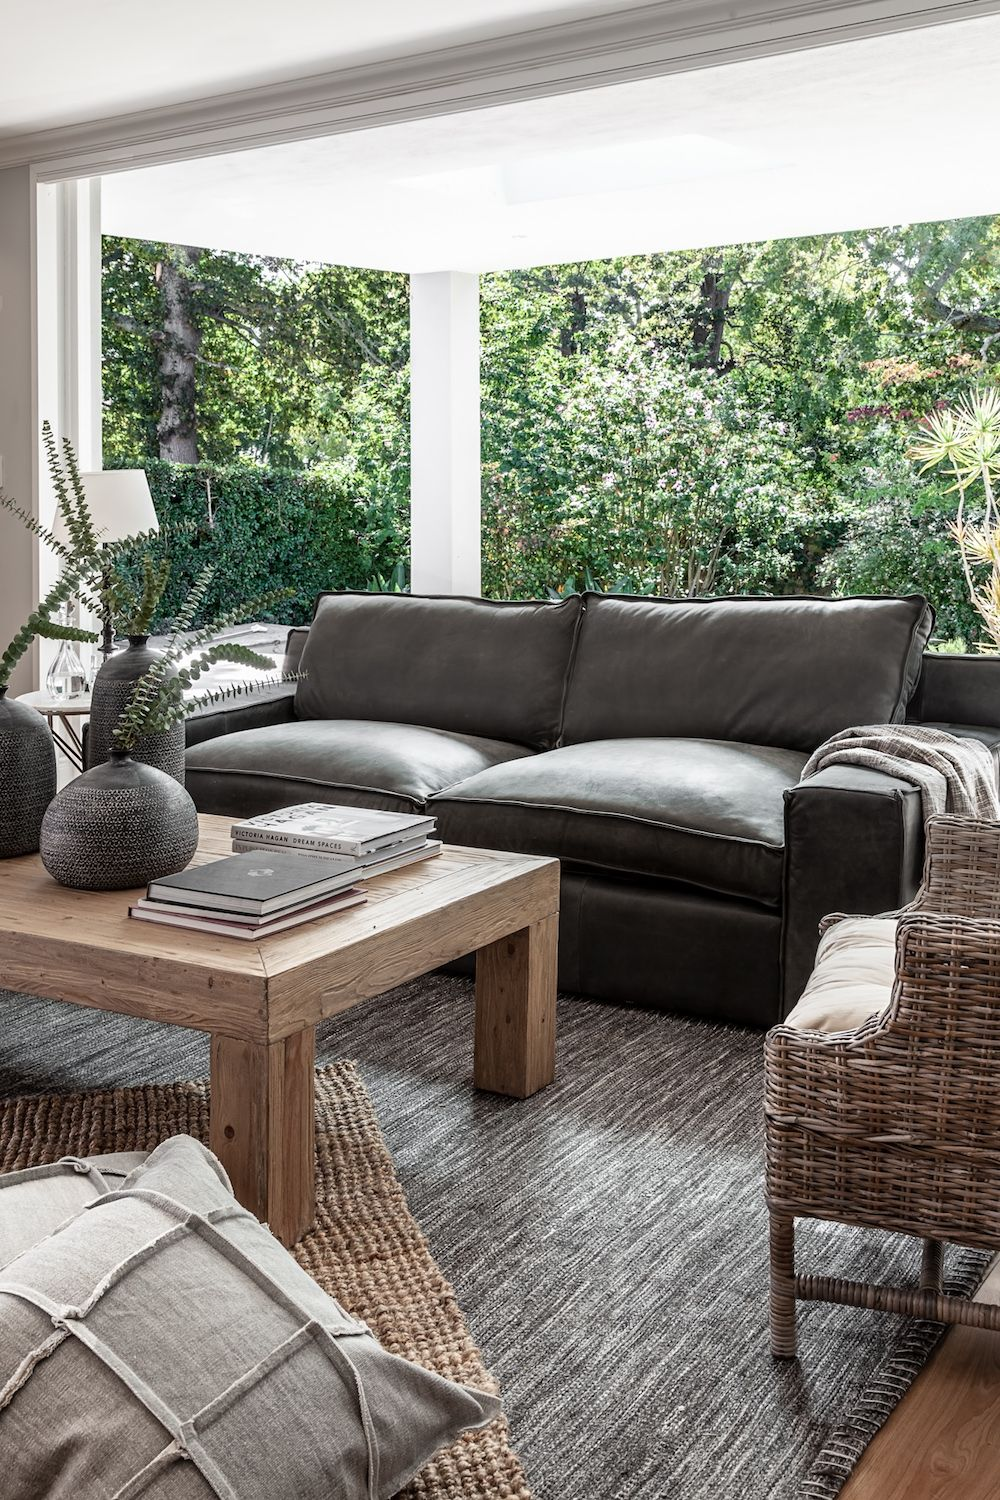 100% Leather Upholstered Couches in 2020 | Living room ...